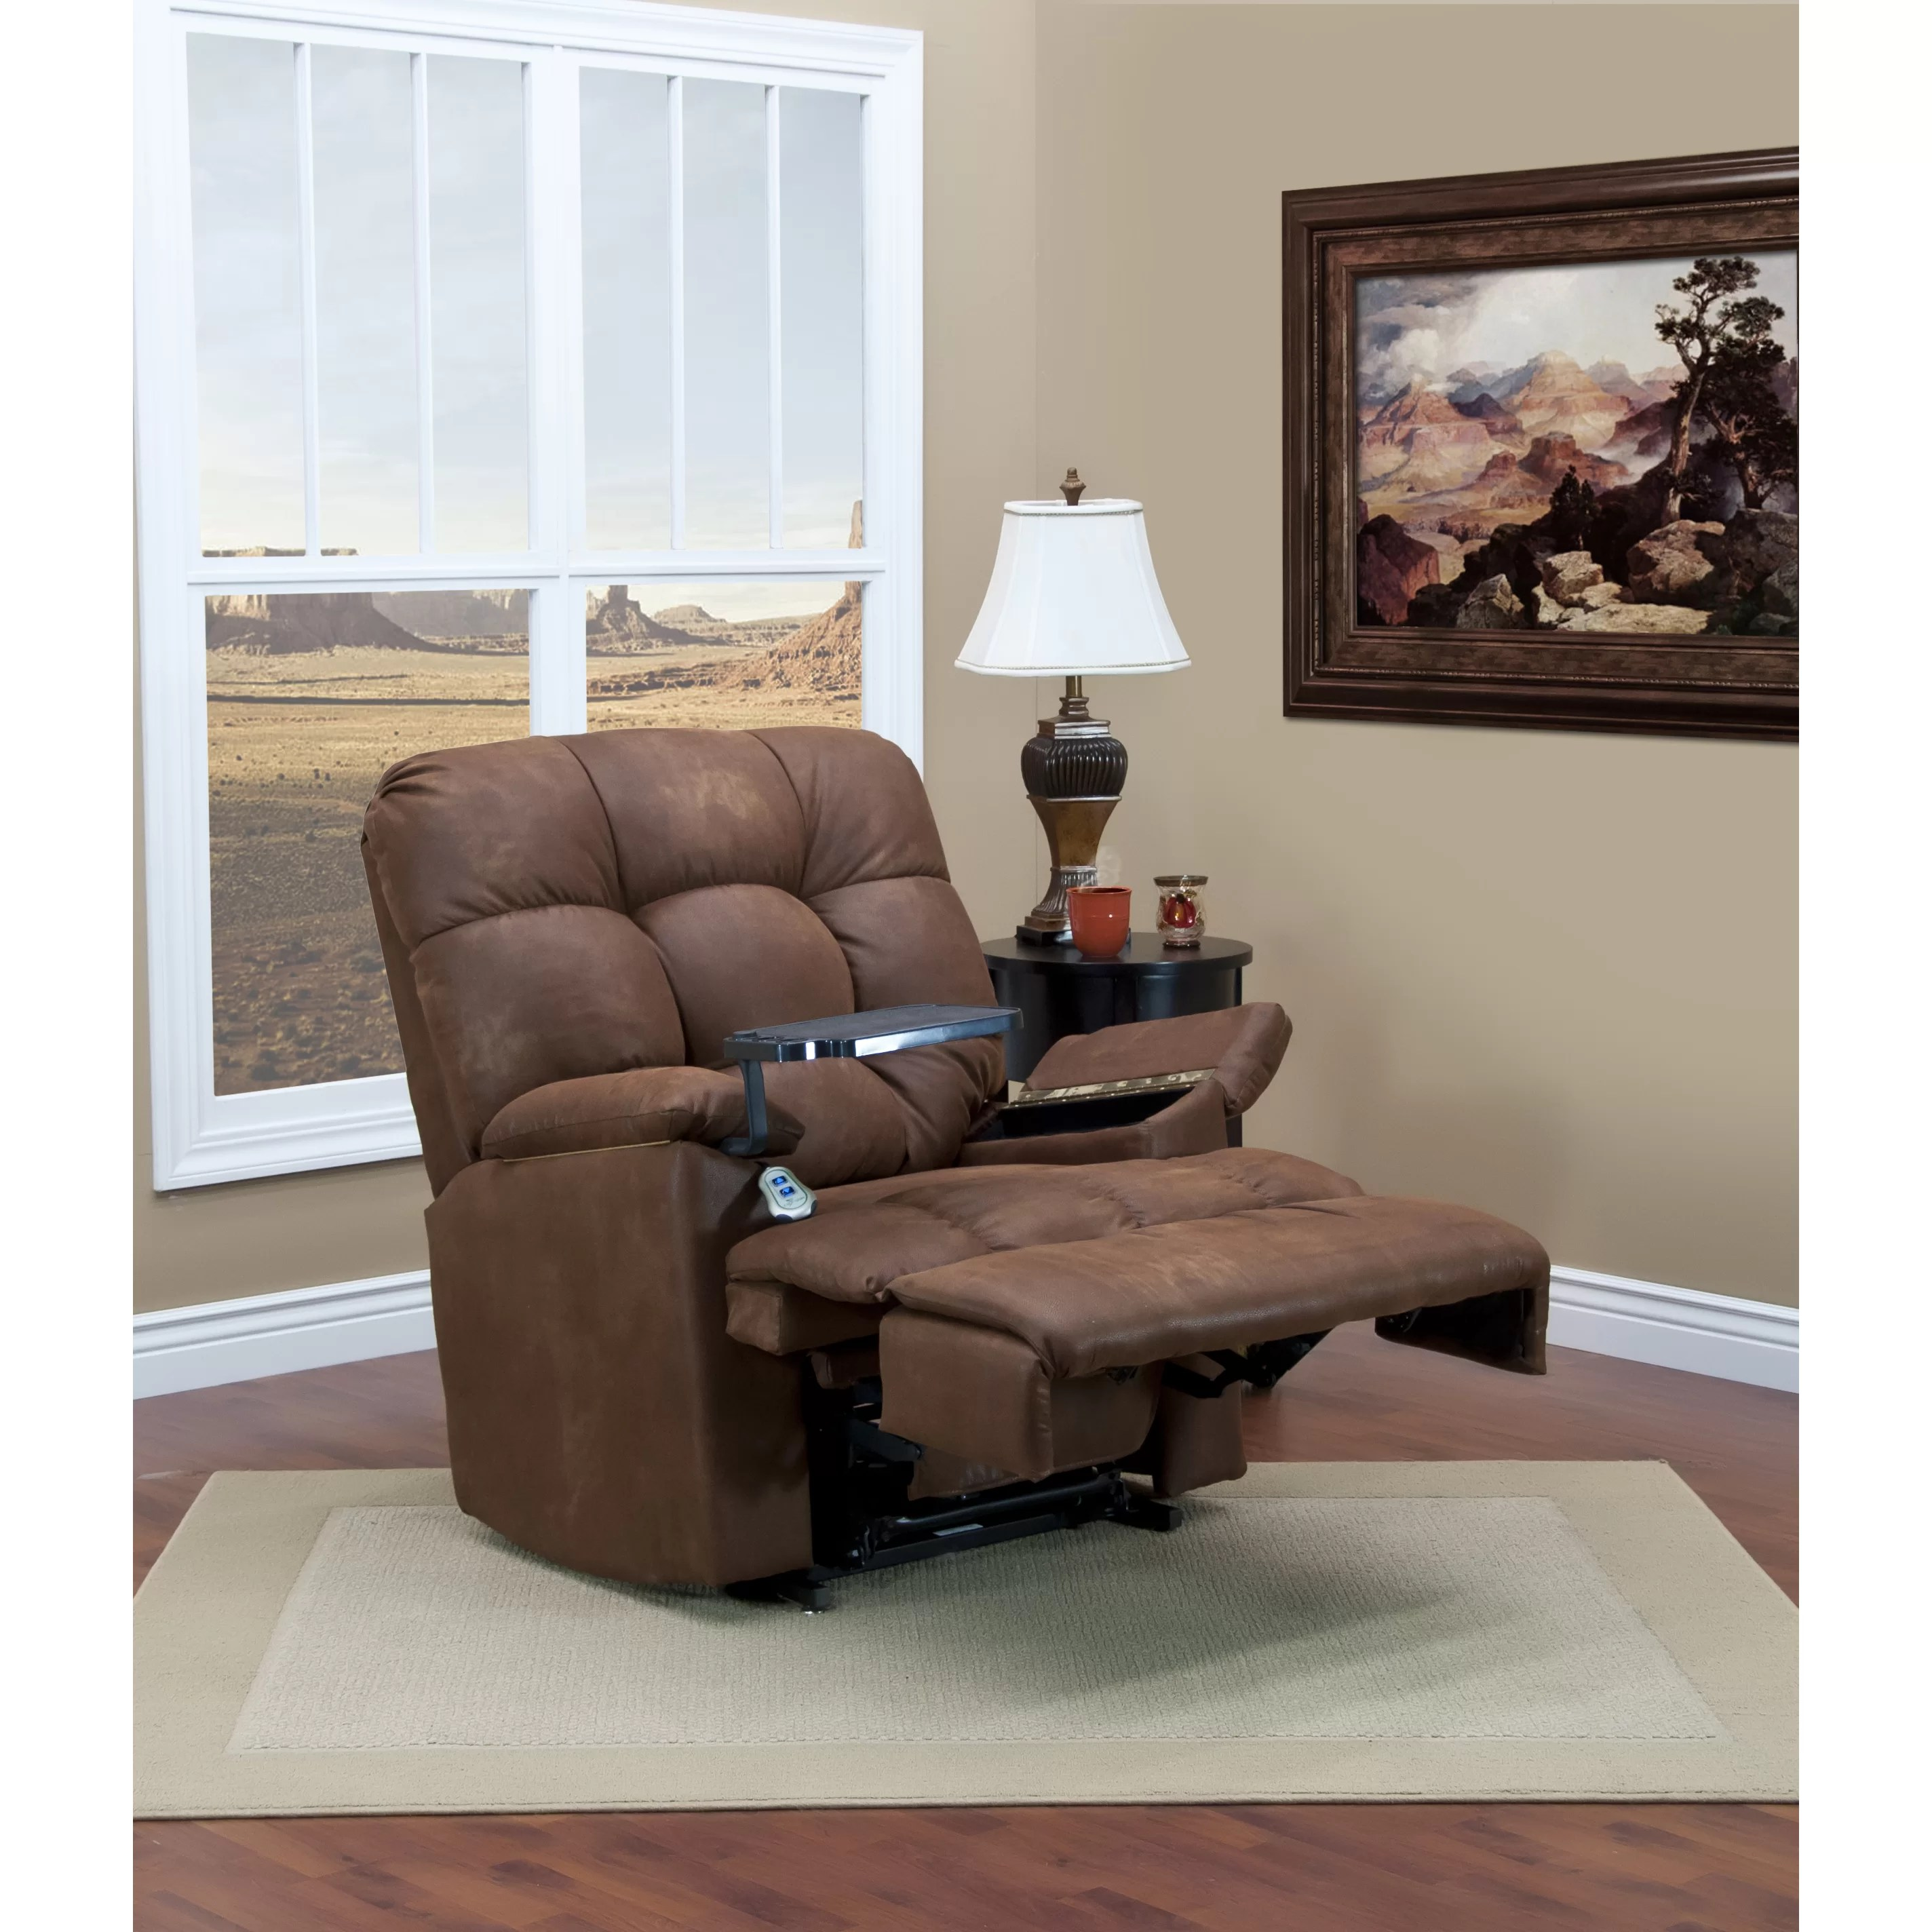 Med Lift Chairs Med Lift 5600 Series Wall A Way Reclining Lift Chair